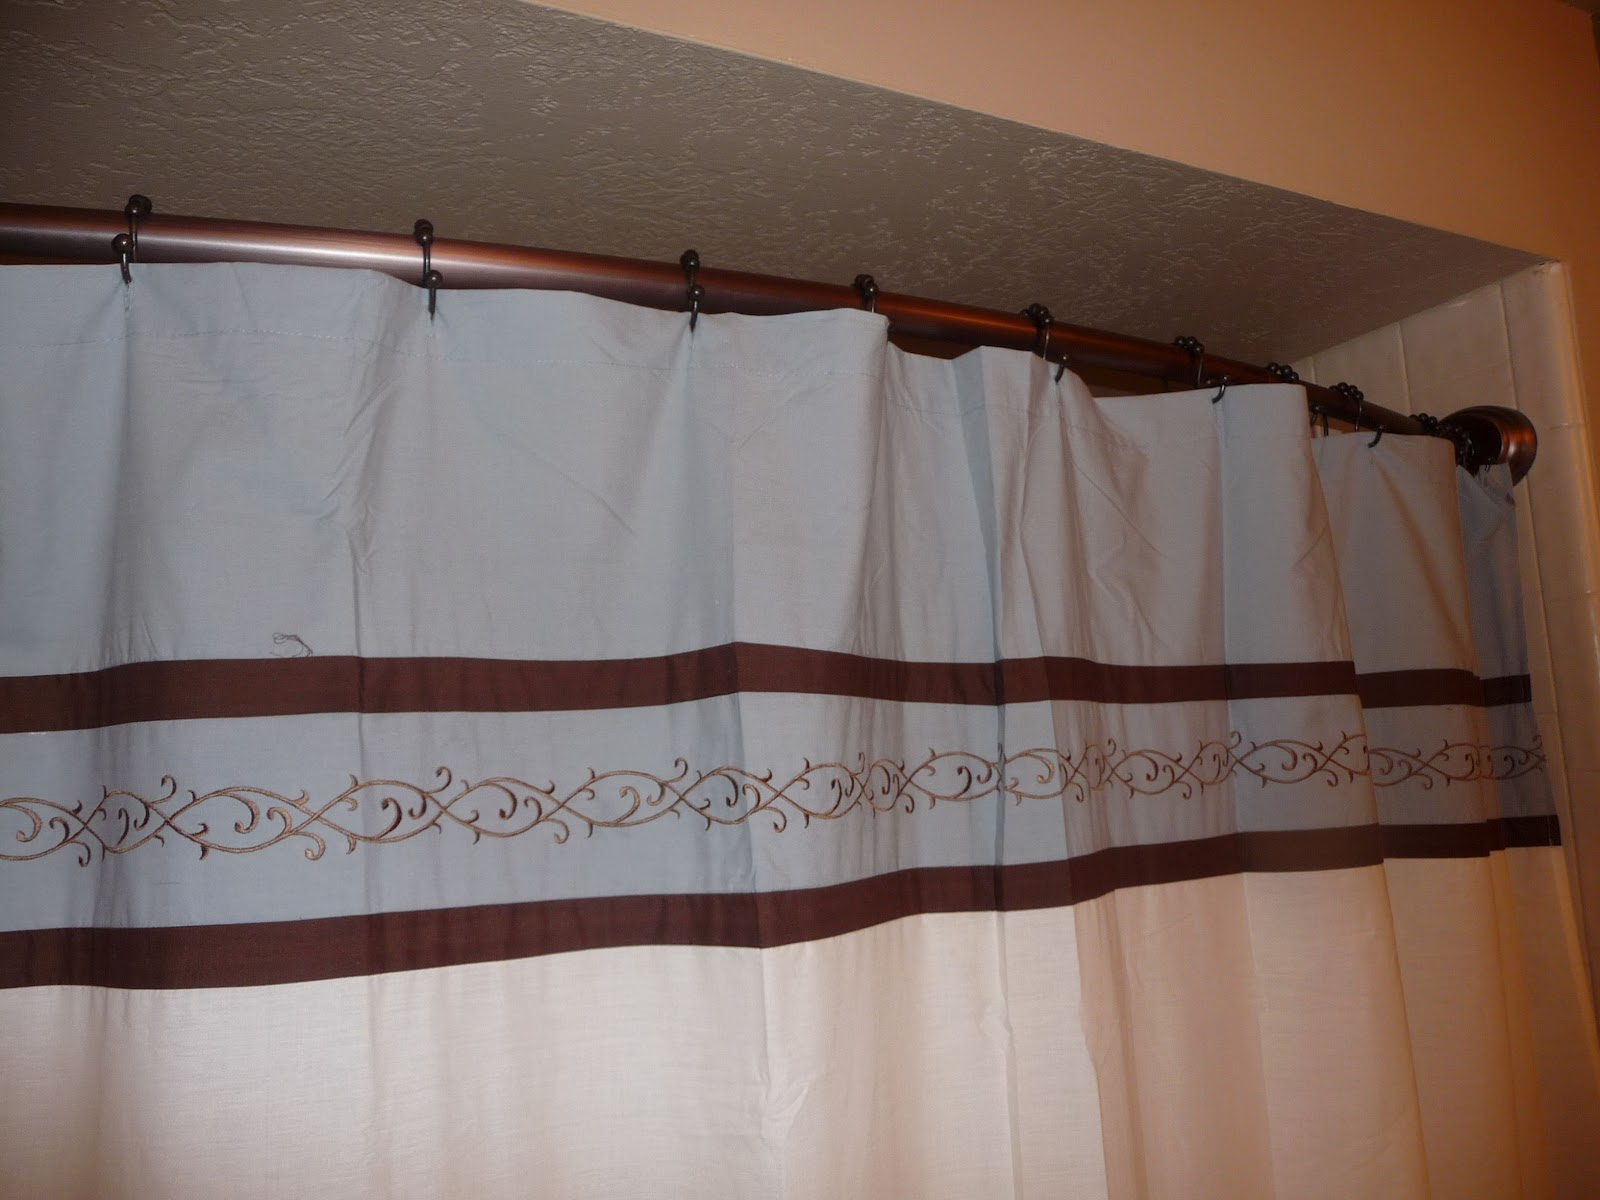 Oil Rubbed Bronze Double Shower Curtain Rod Redesign Concepts Blog Curved Shower Rods